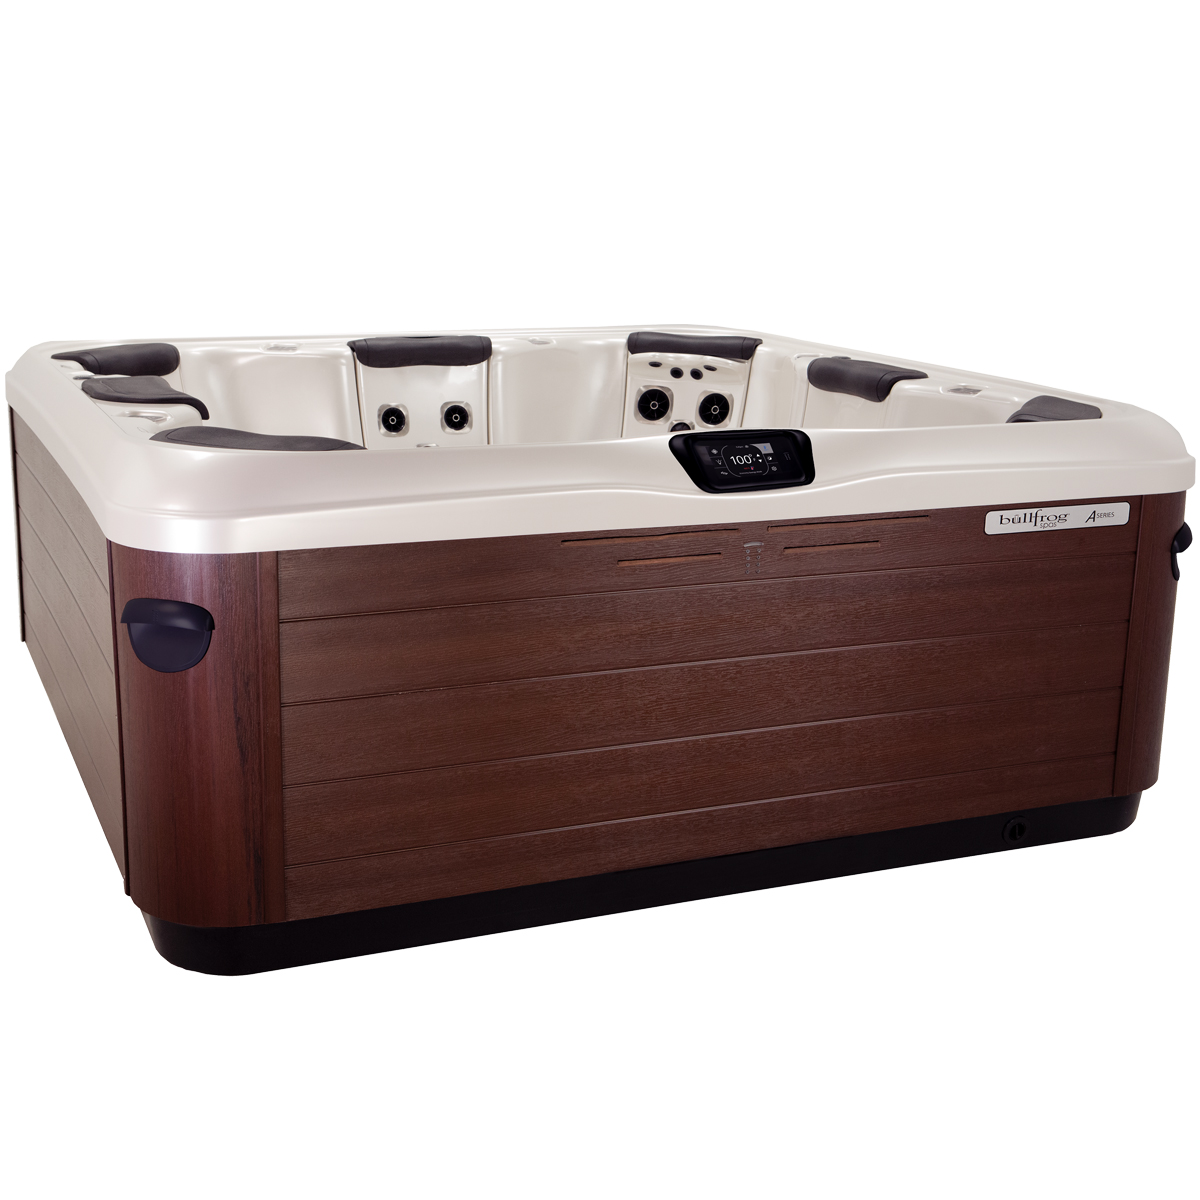 Bullfrog A8 Spa - Bullfrog Spas - The Great Escape